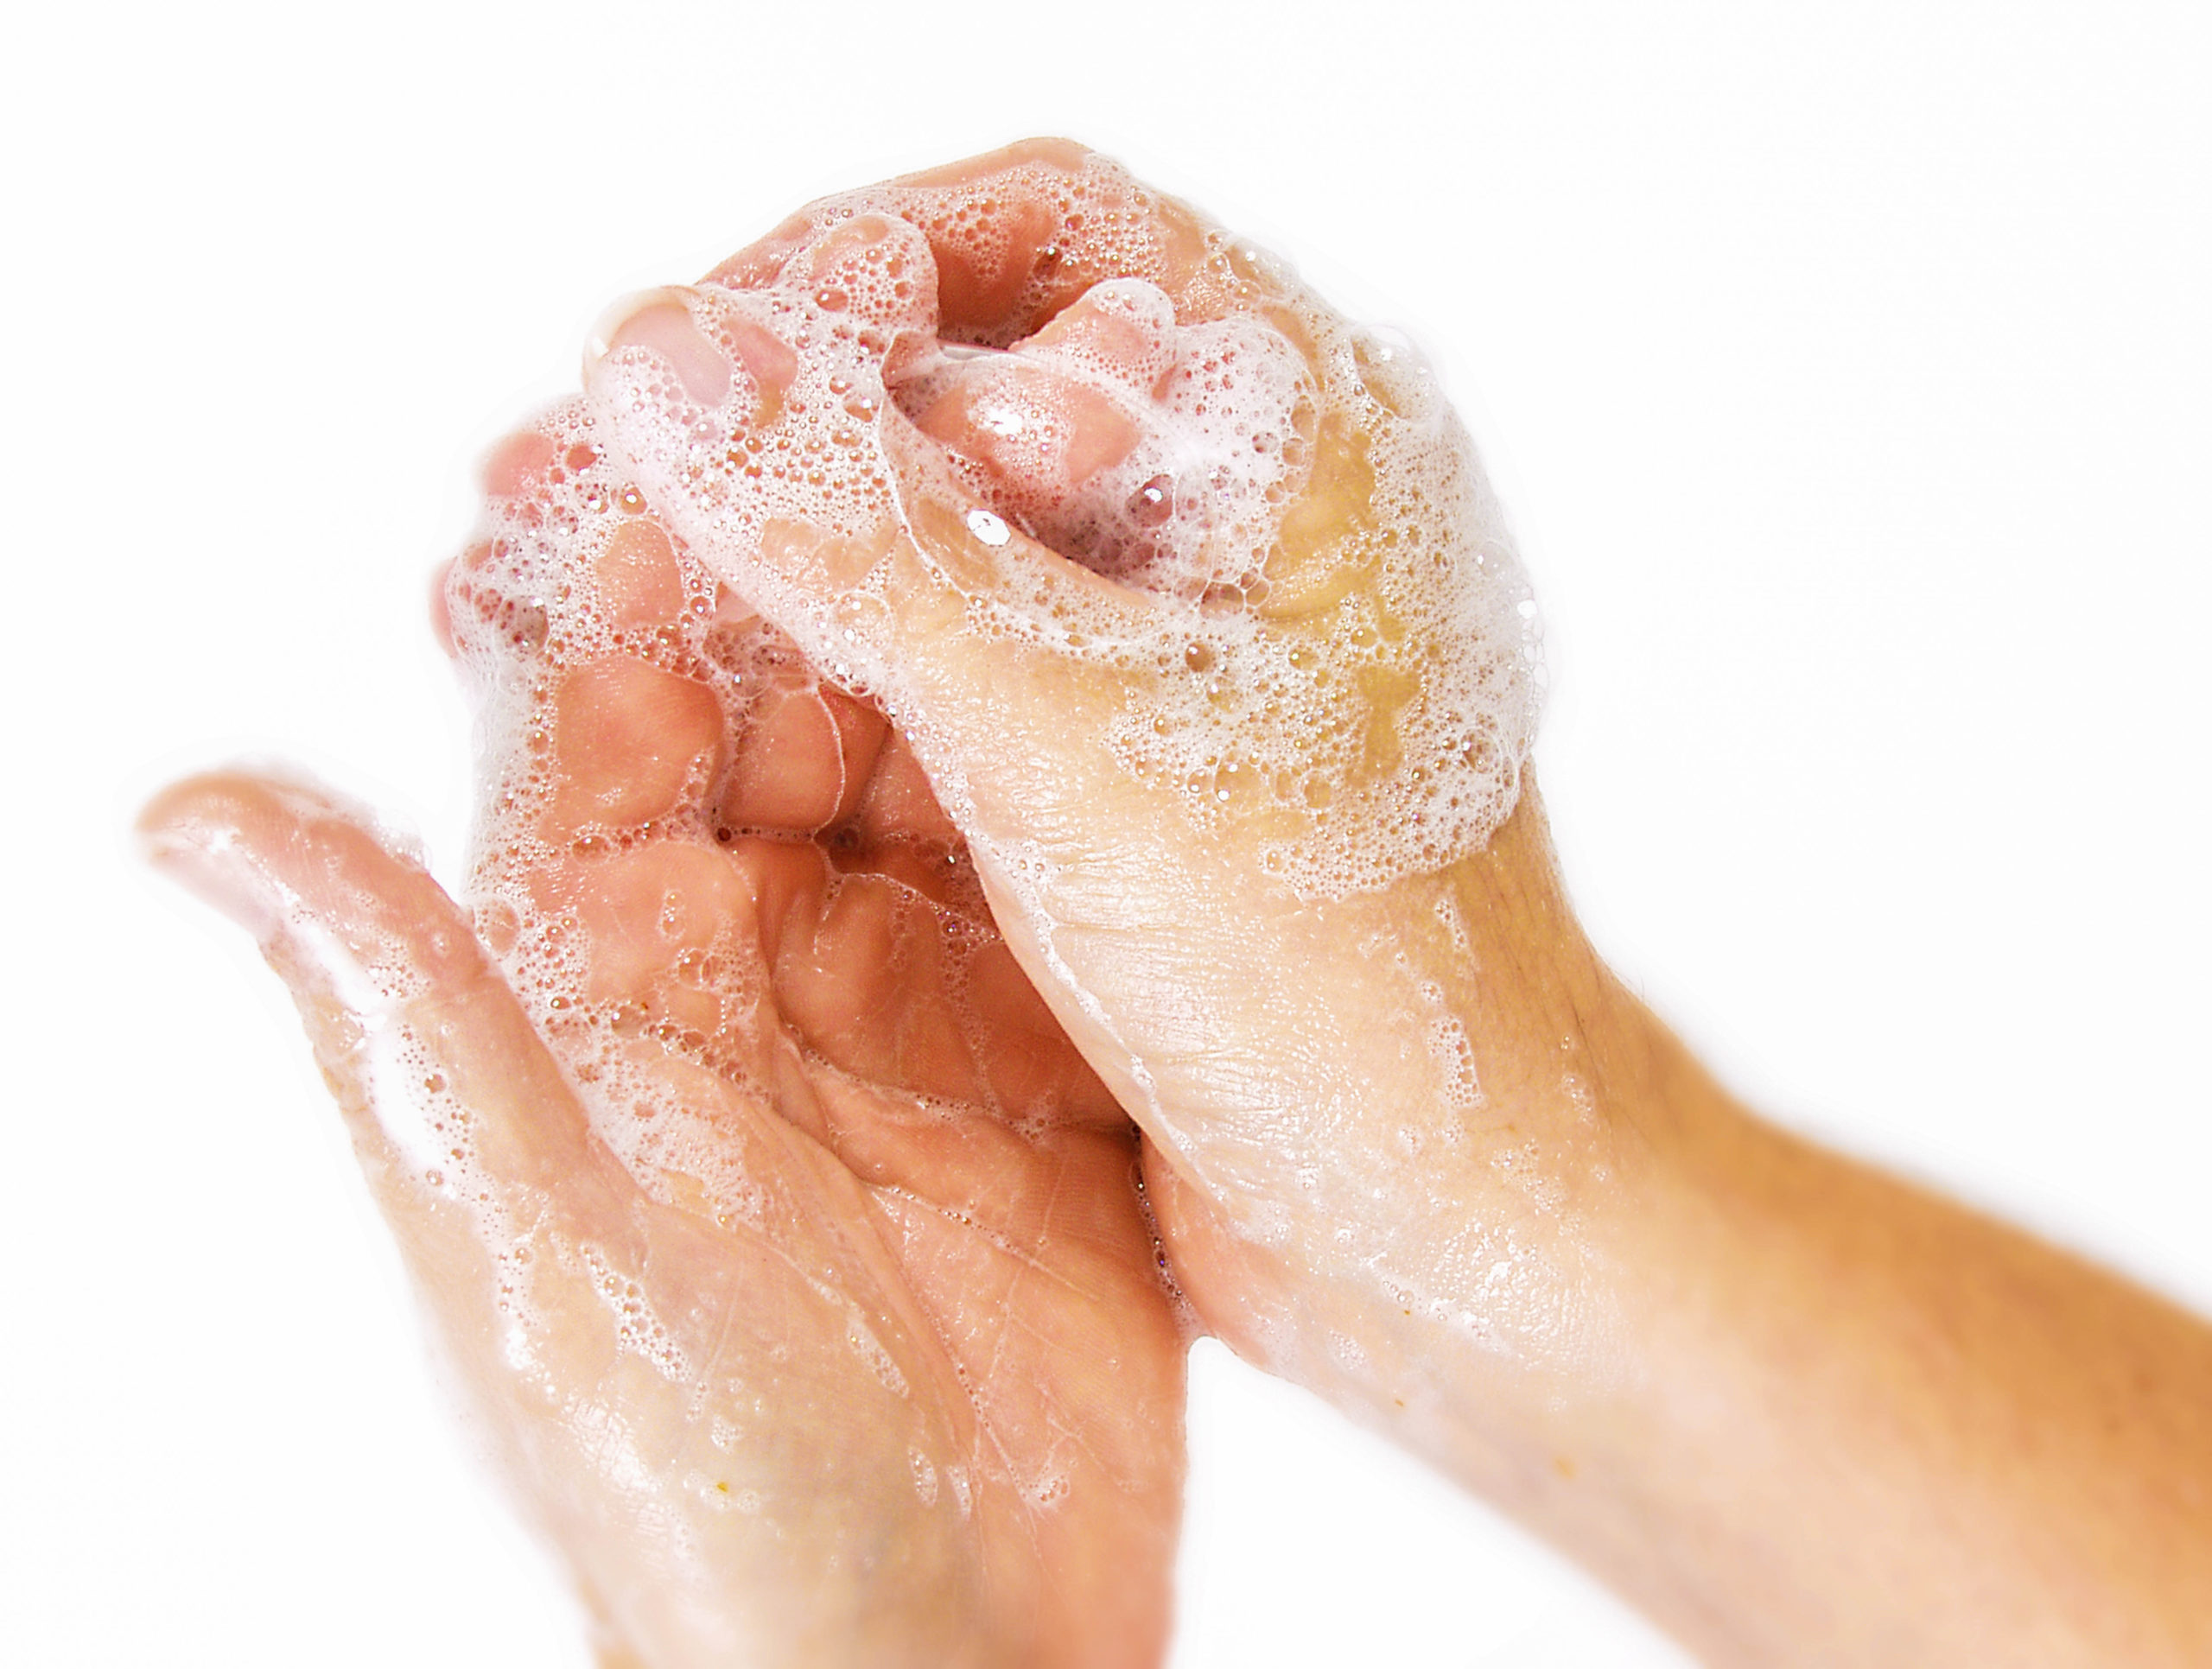 When to use soap and water, and when to use hand sanitizer - The CDC notes that preventing the spread of sickness through handwashing is most effective when people know which method to use when cleaning their hands. #HandWashing